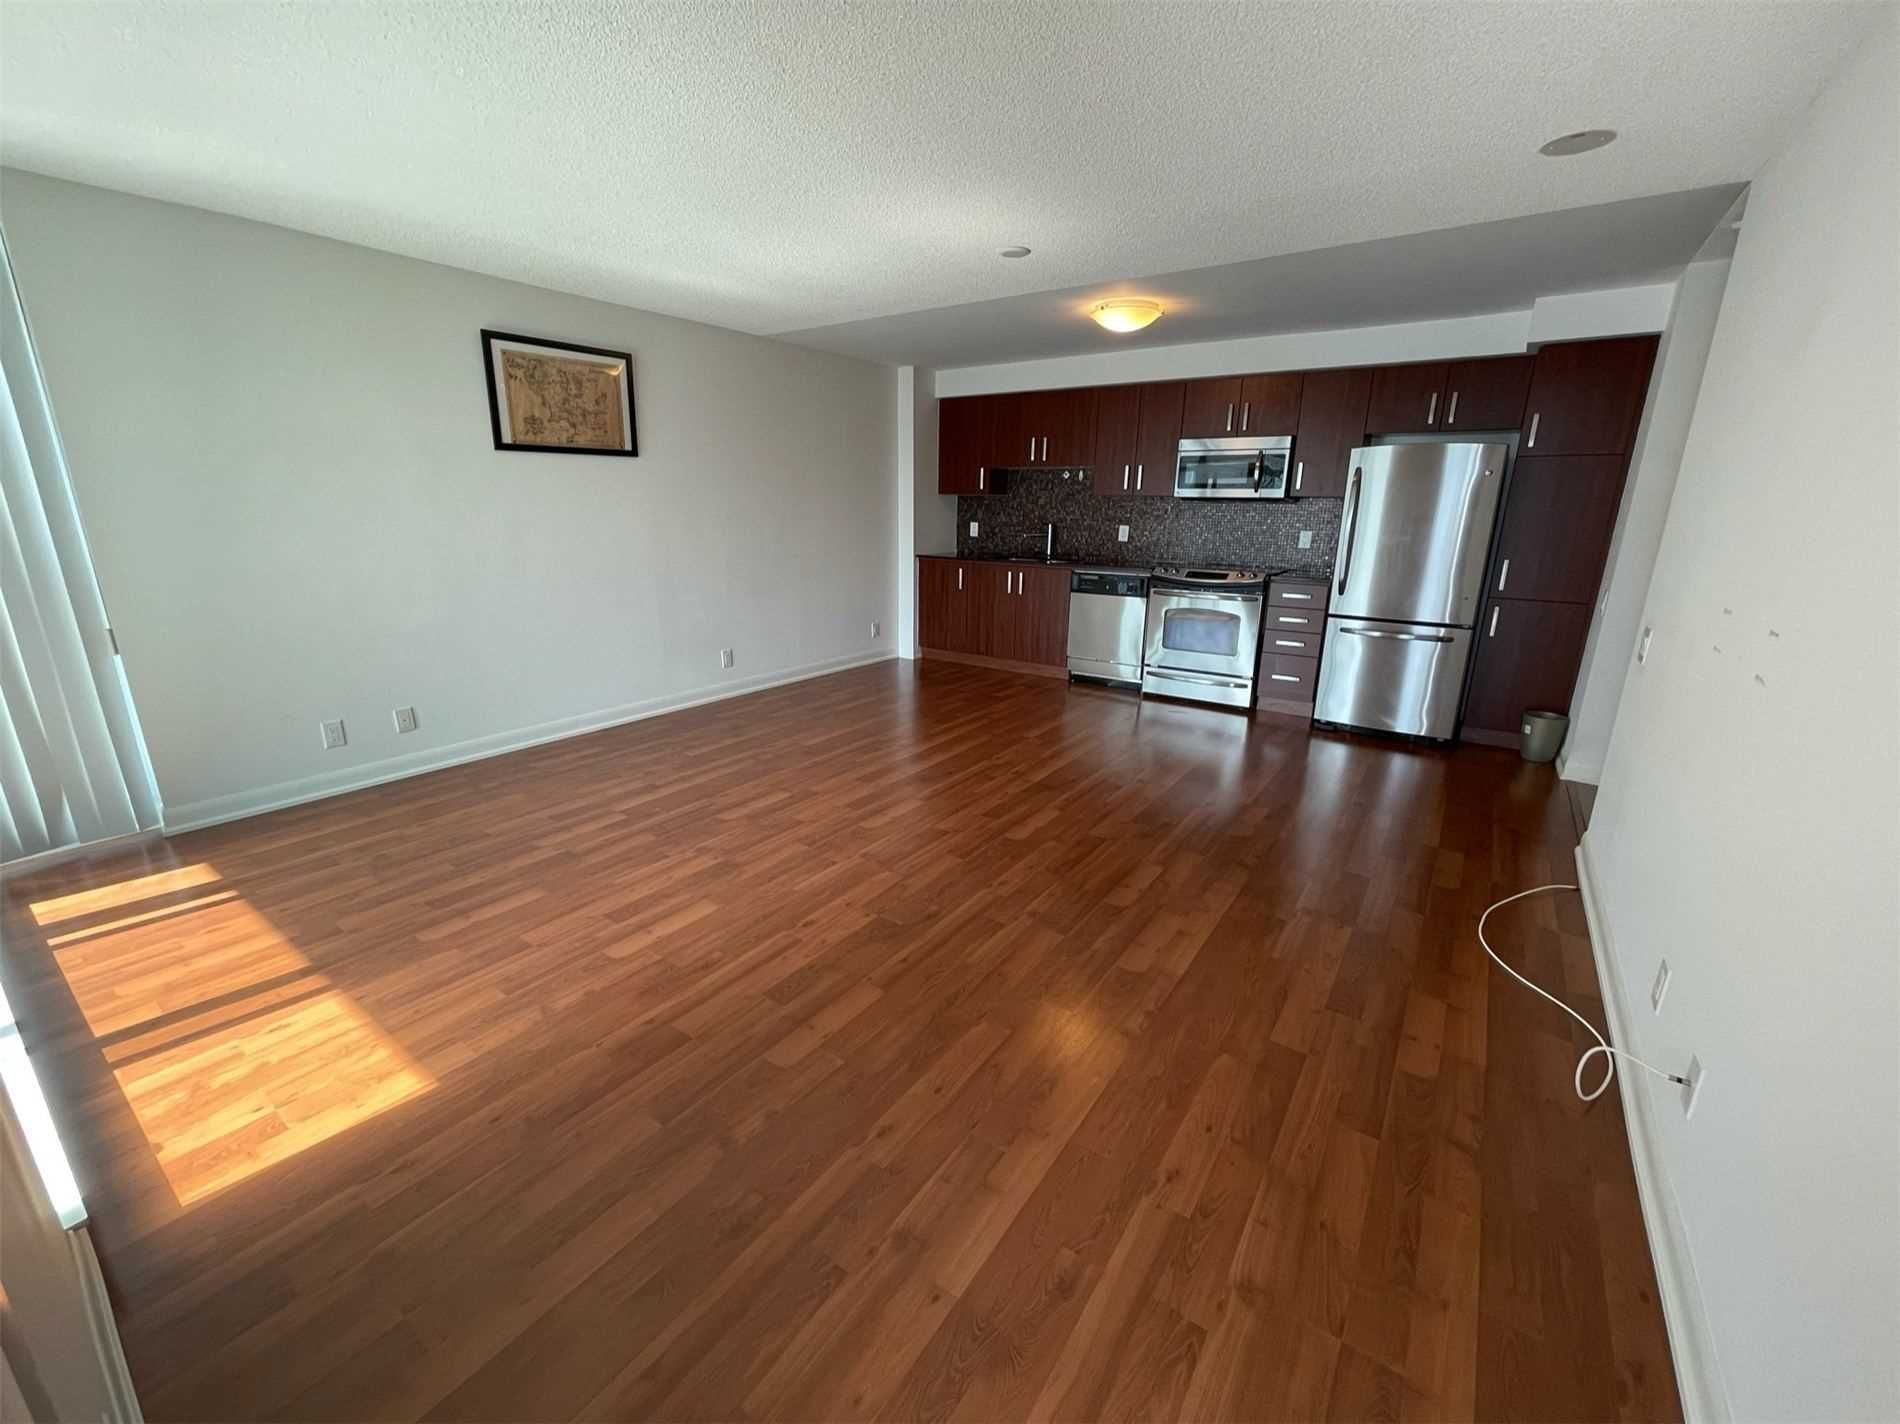 17 Anndale Dr, unit 1117 for rent in Toronto - image #1